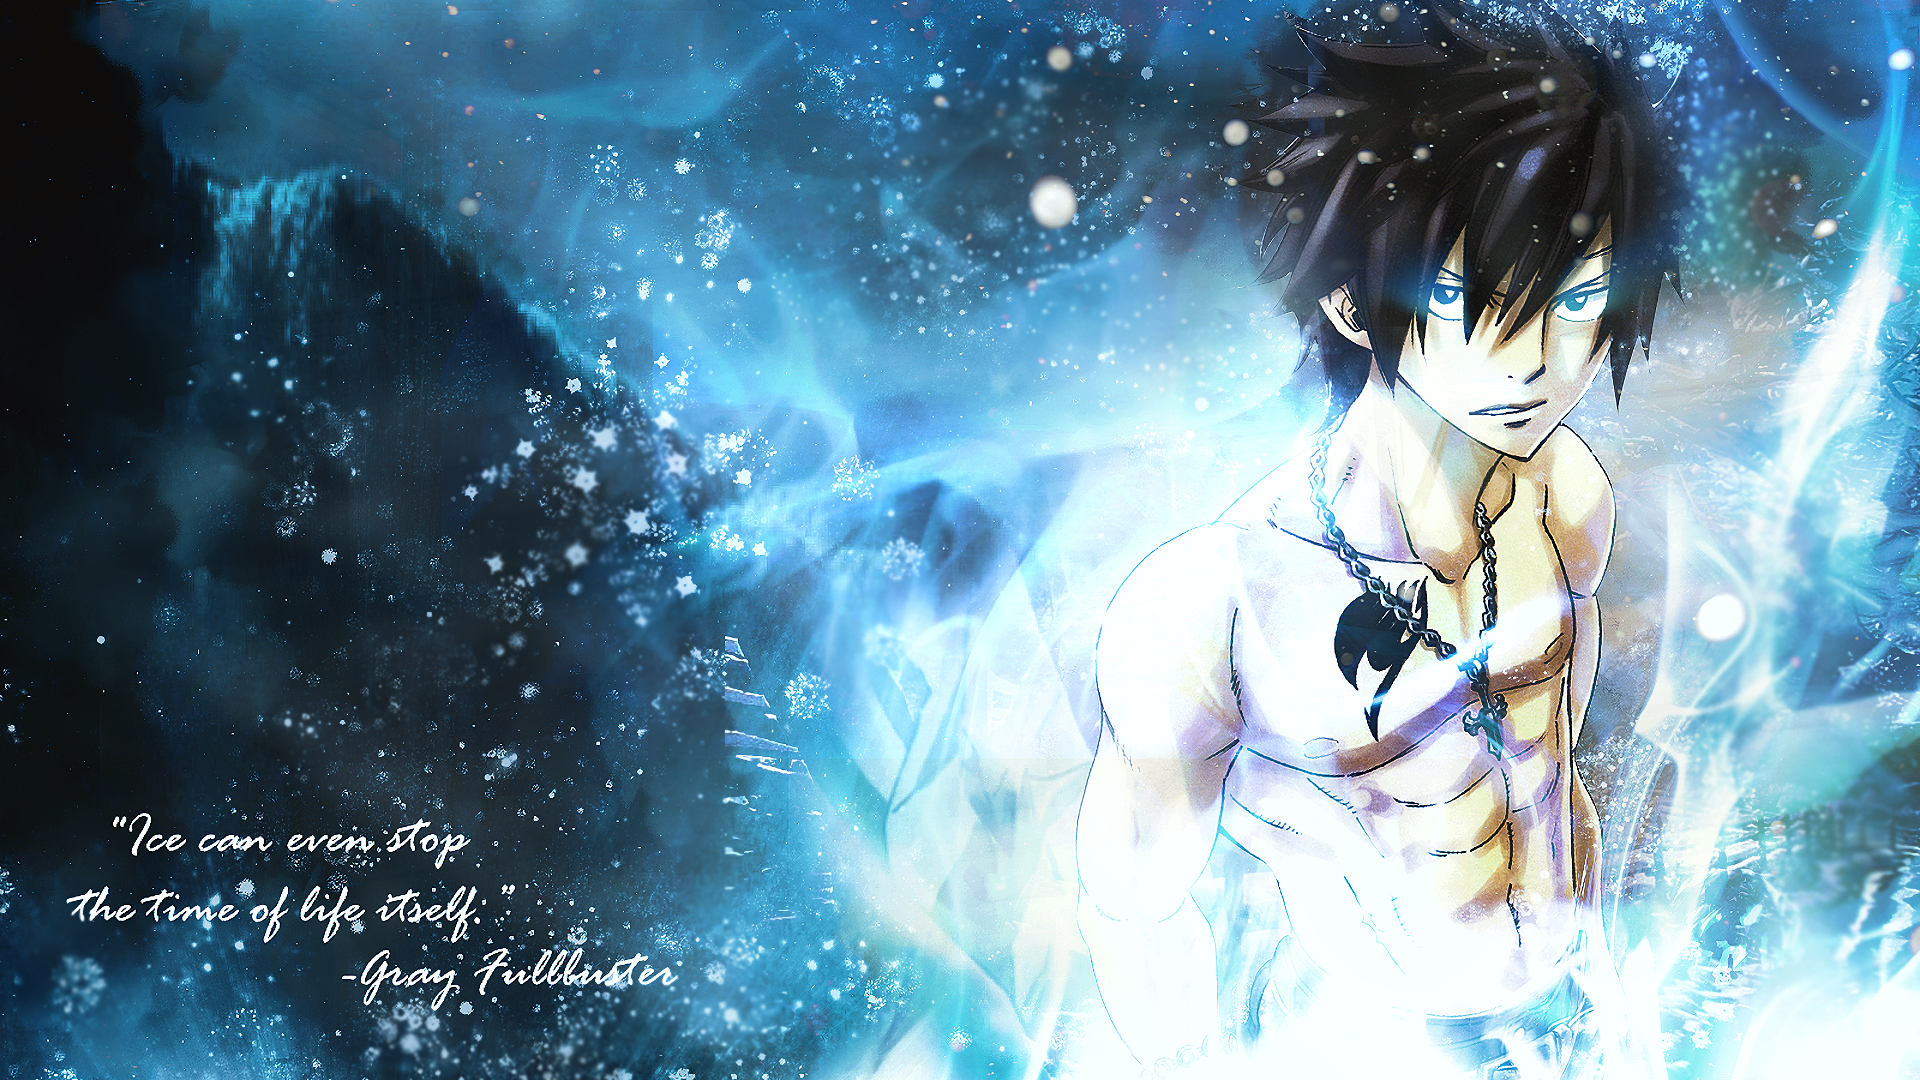 Fairy Tail Hd Wallpaper Background Image 1920x1080 Id 743606